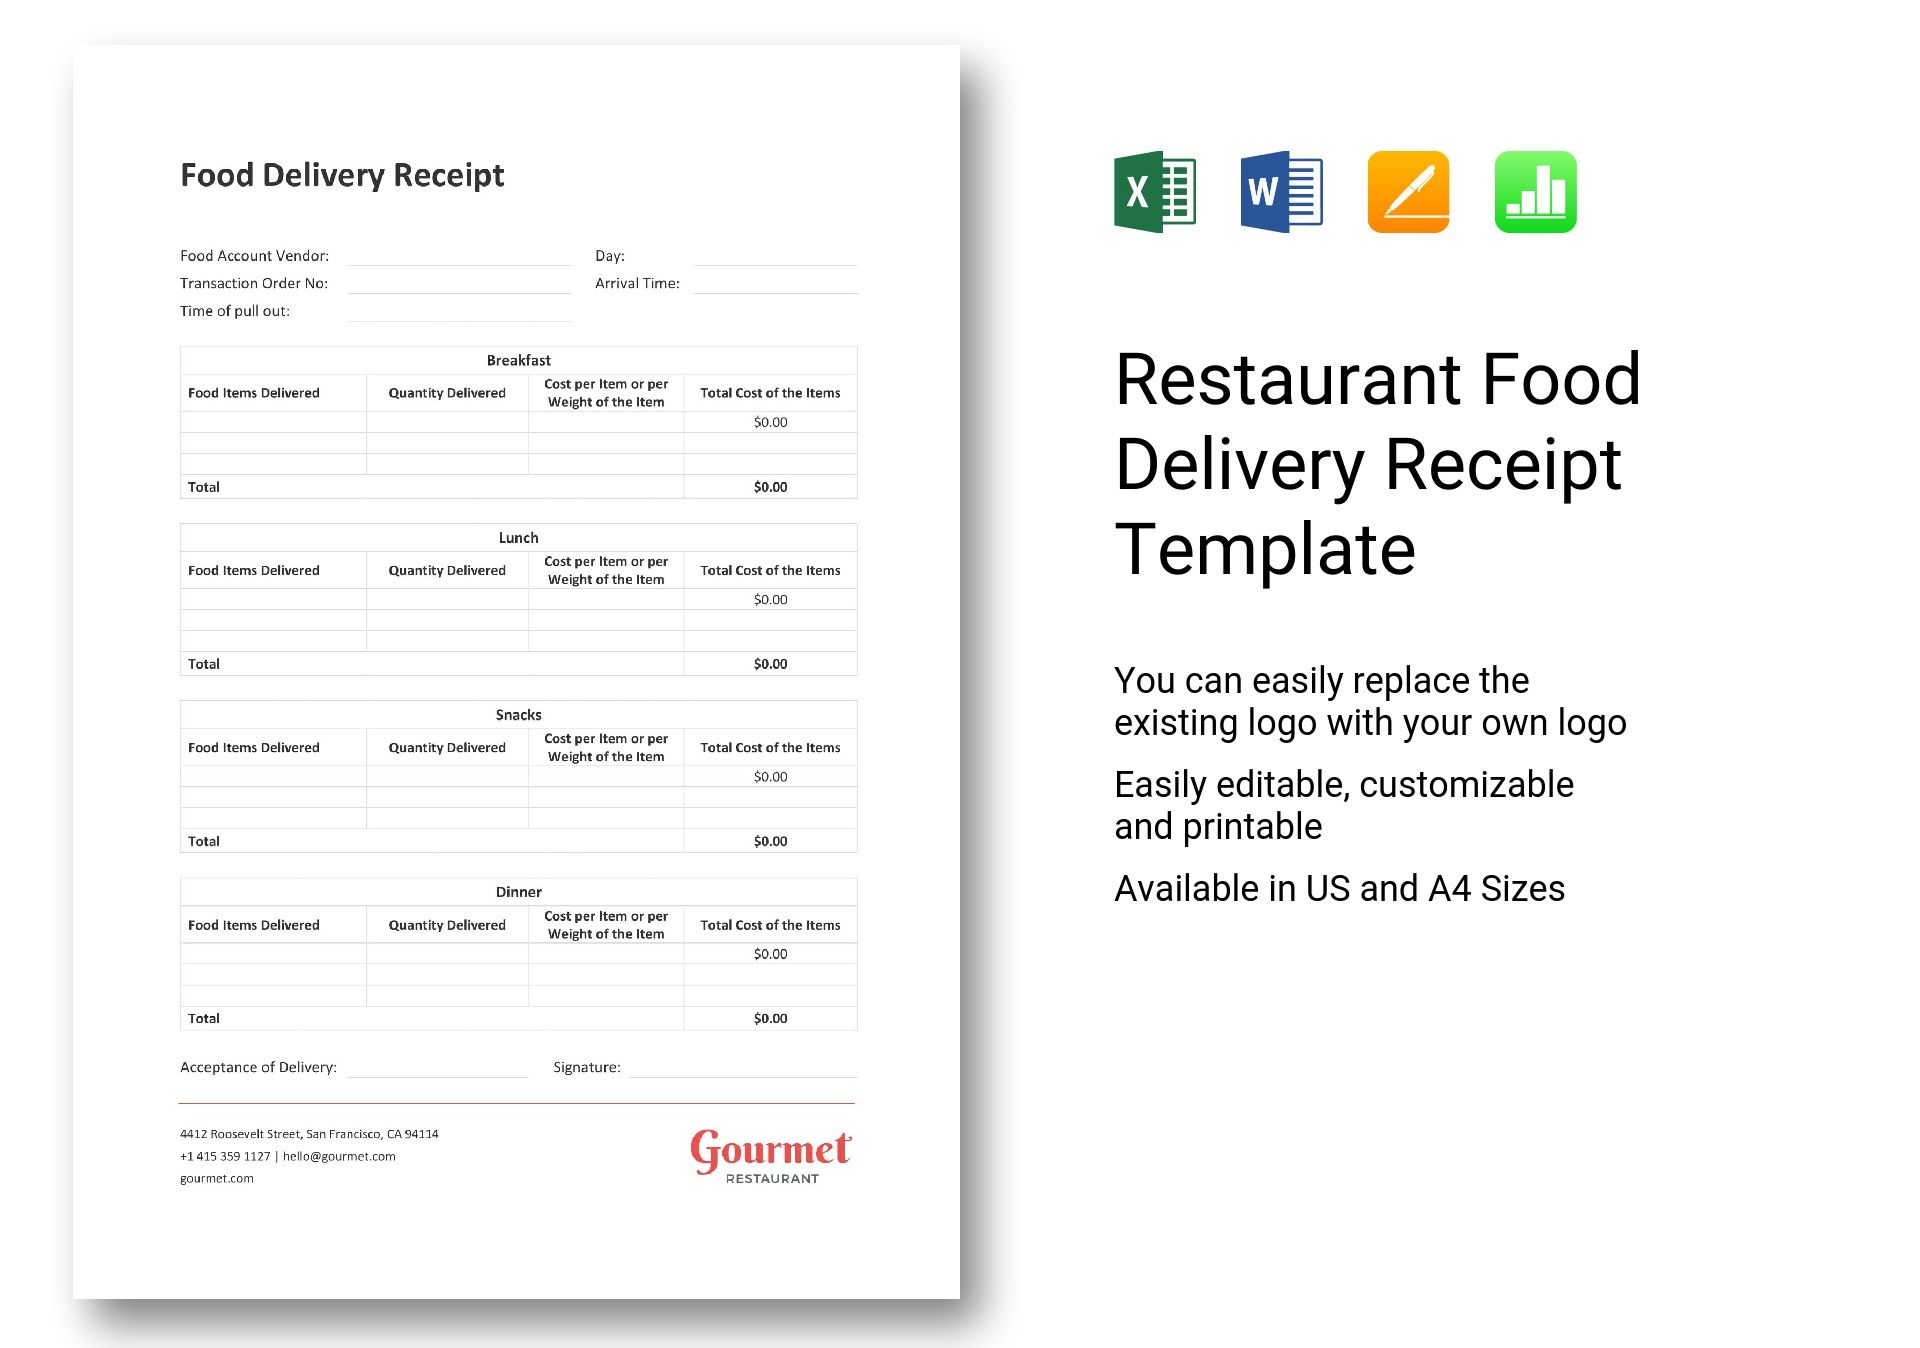 Restaurant Food Delivery Receipt